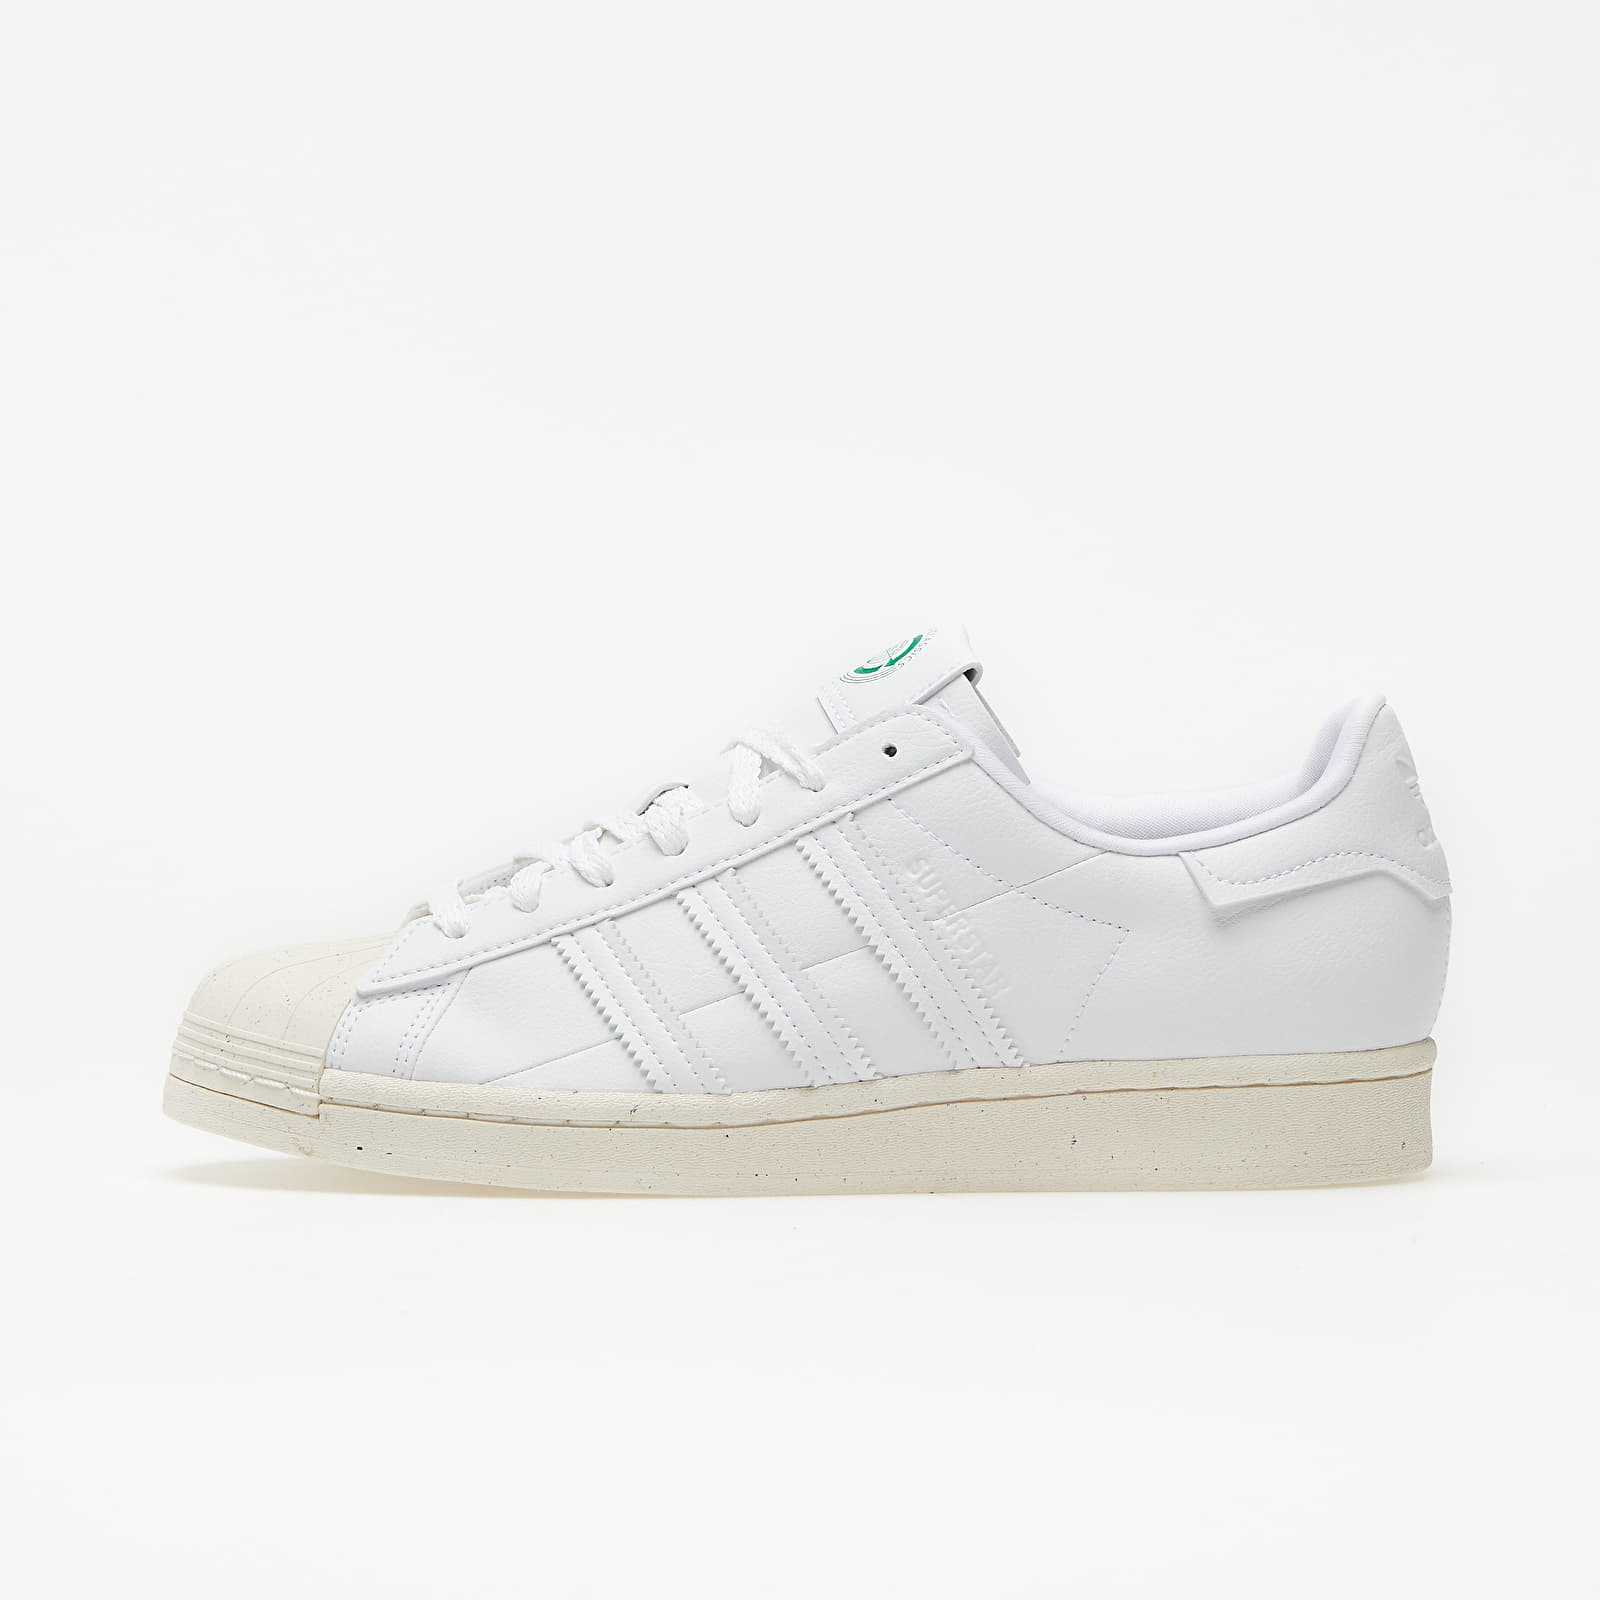 adidas Superstar Clean Classics Ftw White/ Off White/ Green EUR 43 1/3